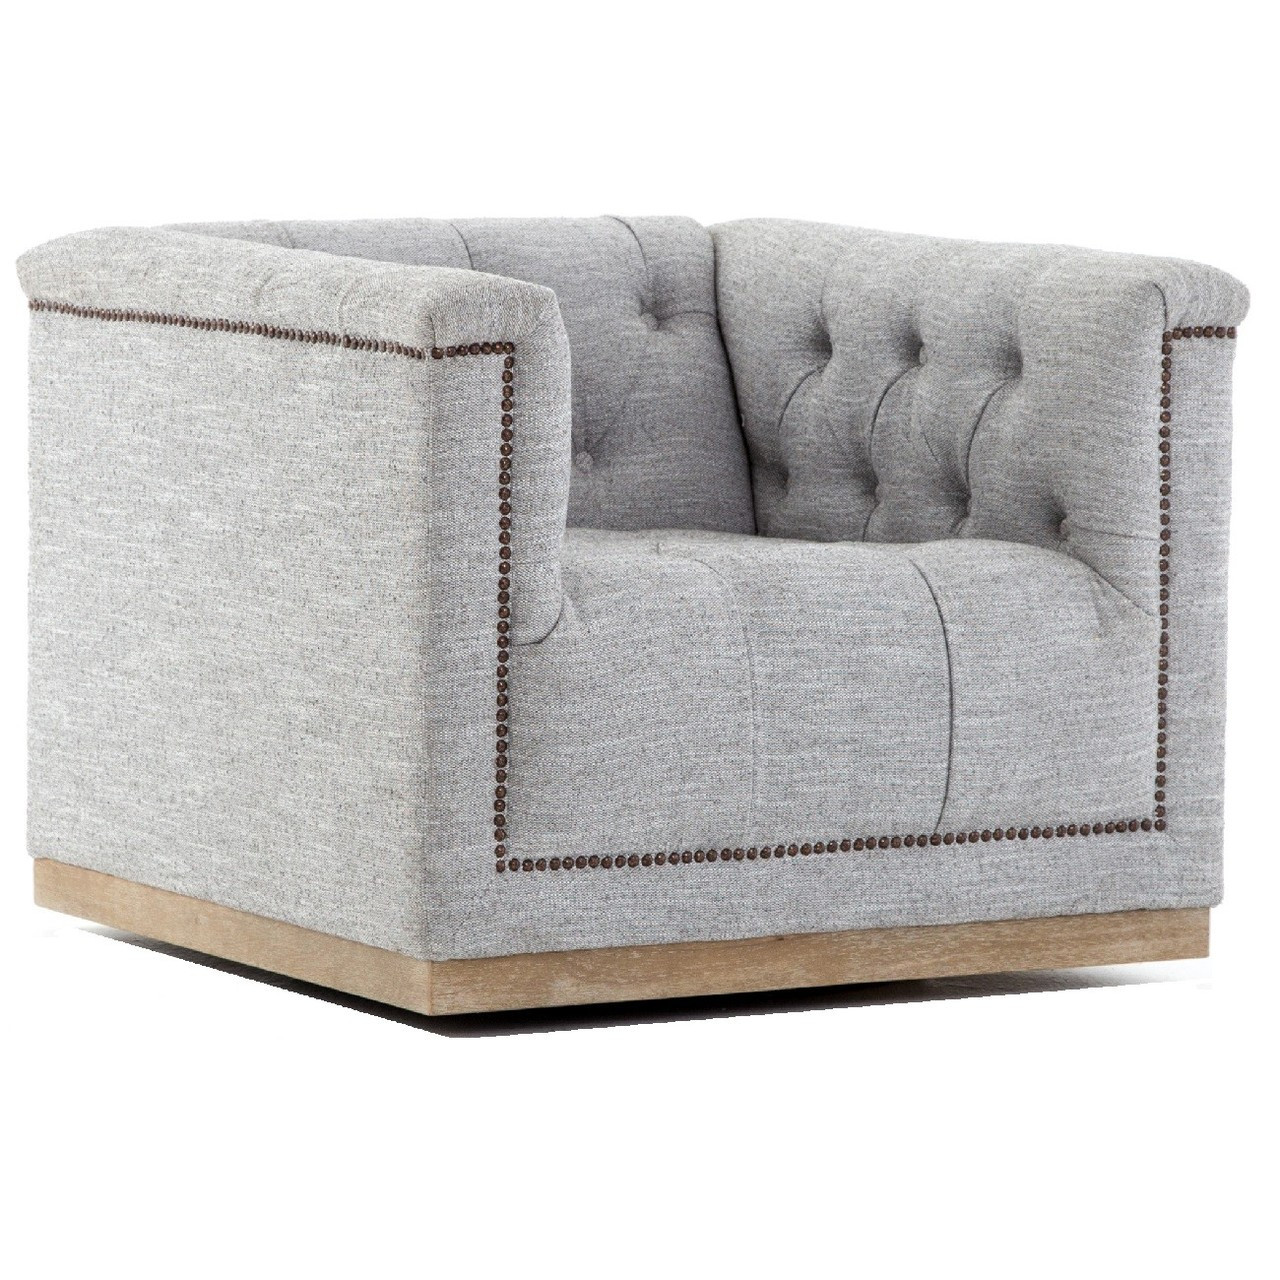 Beau Maxx Grey Fabric Upholstered Tufted Swivel Club Chair